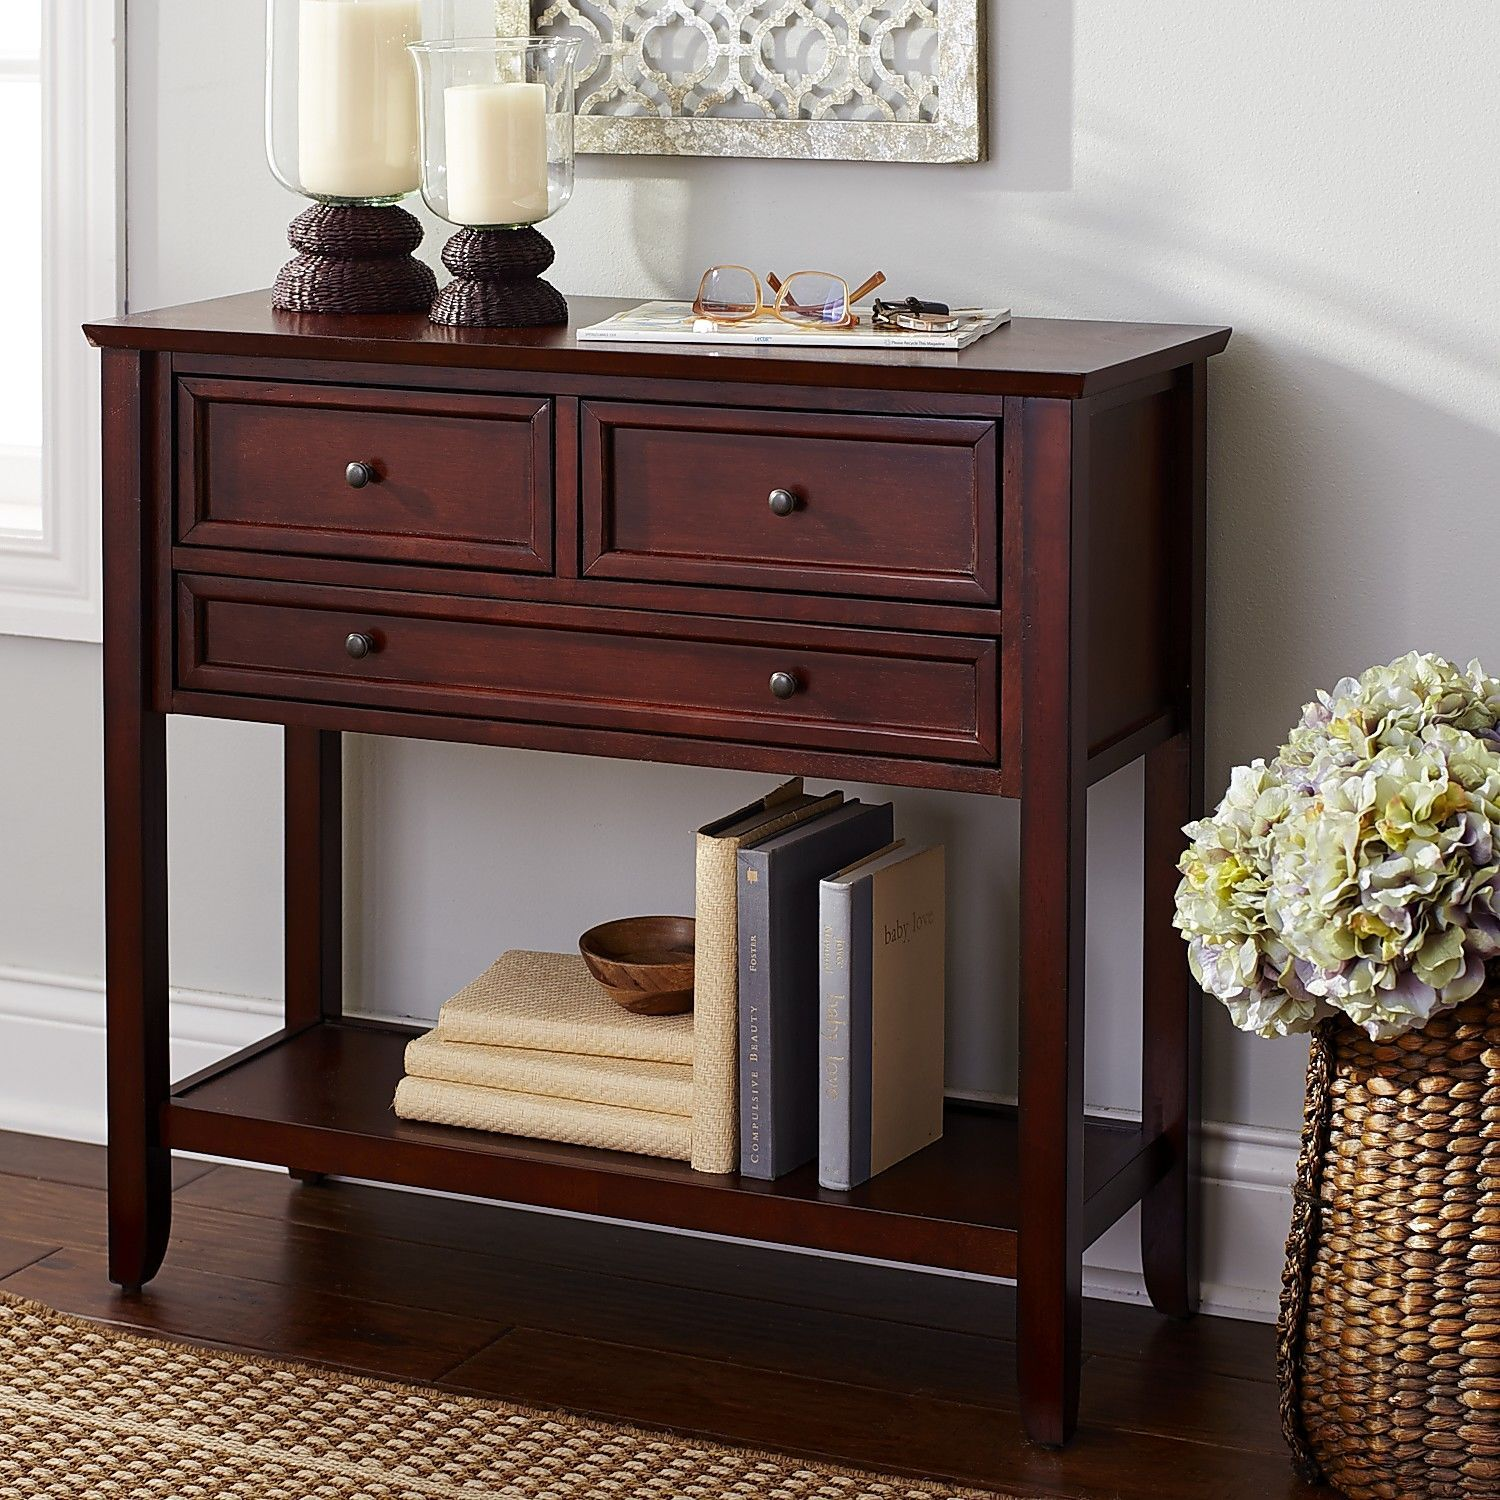 Ashington Small Console Table   Mahogany Brown | Pier 1 Imports